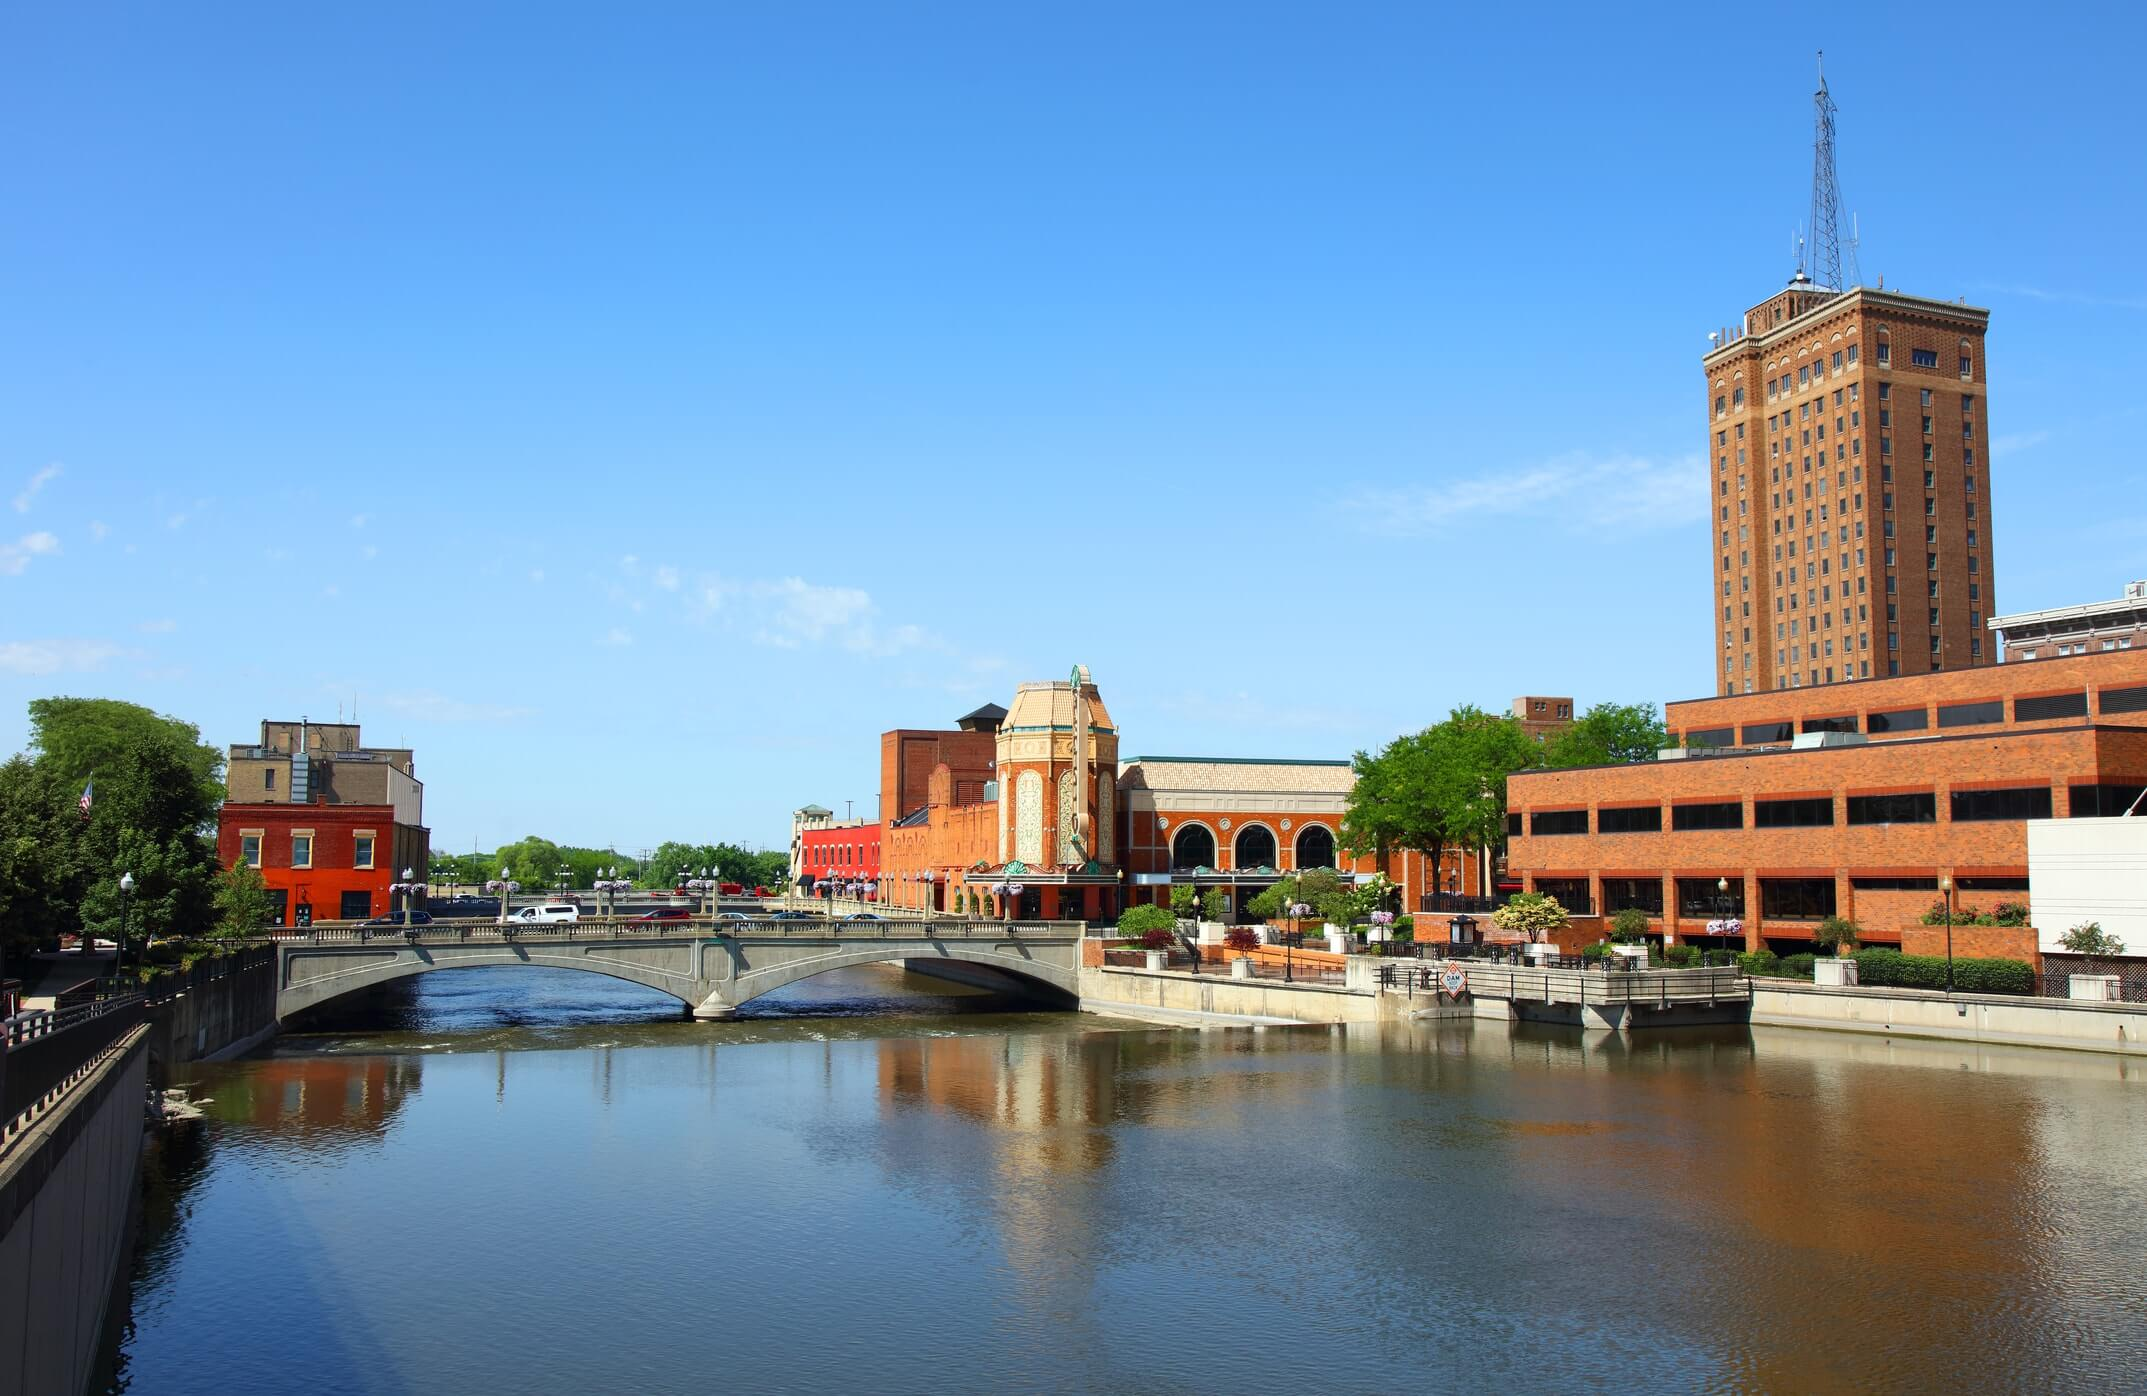 This is a photo of a river and a building in downtown Aurora Illinois